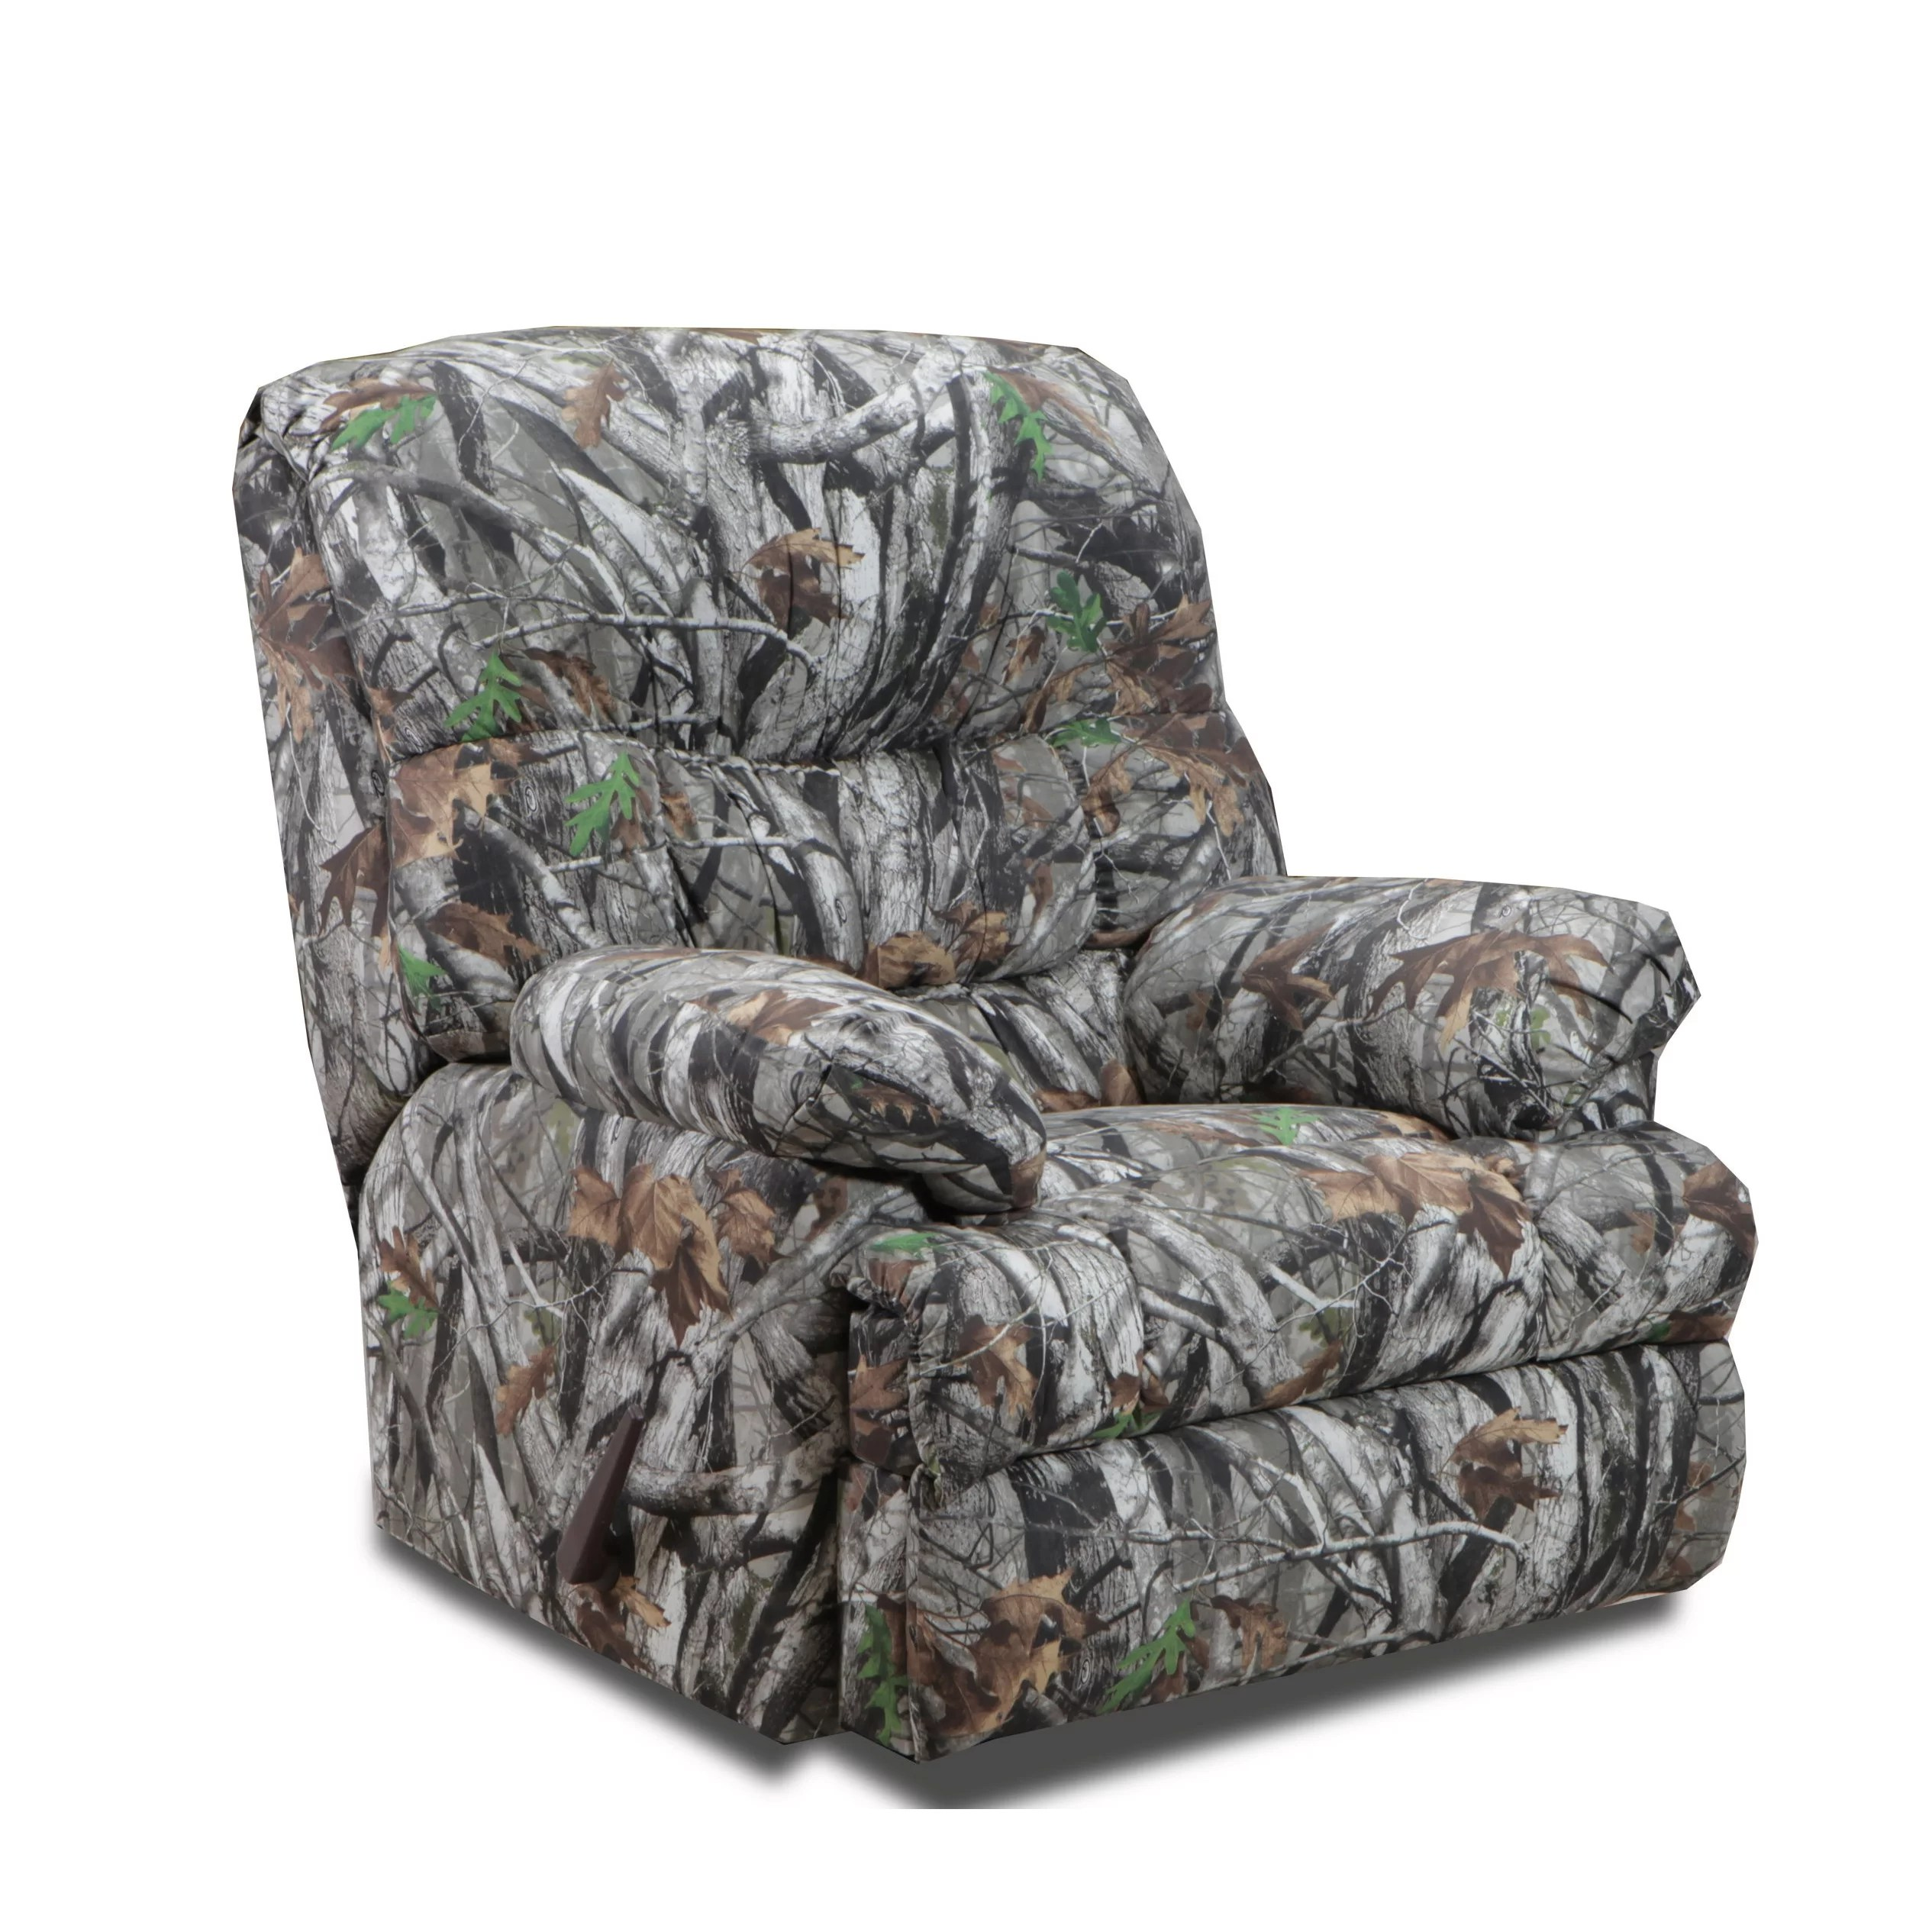 Camo Recliner Chair Chelsea Home Camo Recliner And Reviews Wayfair